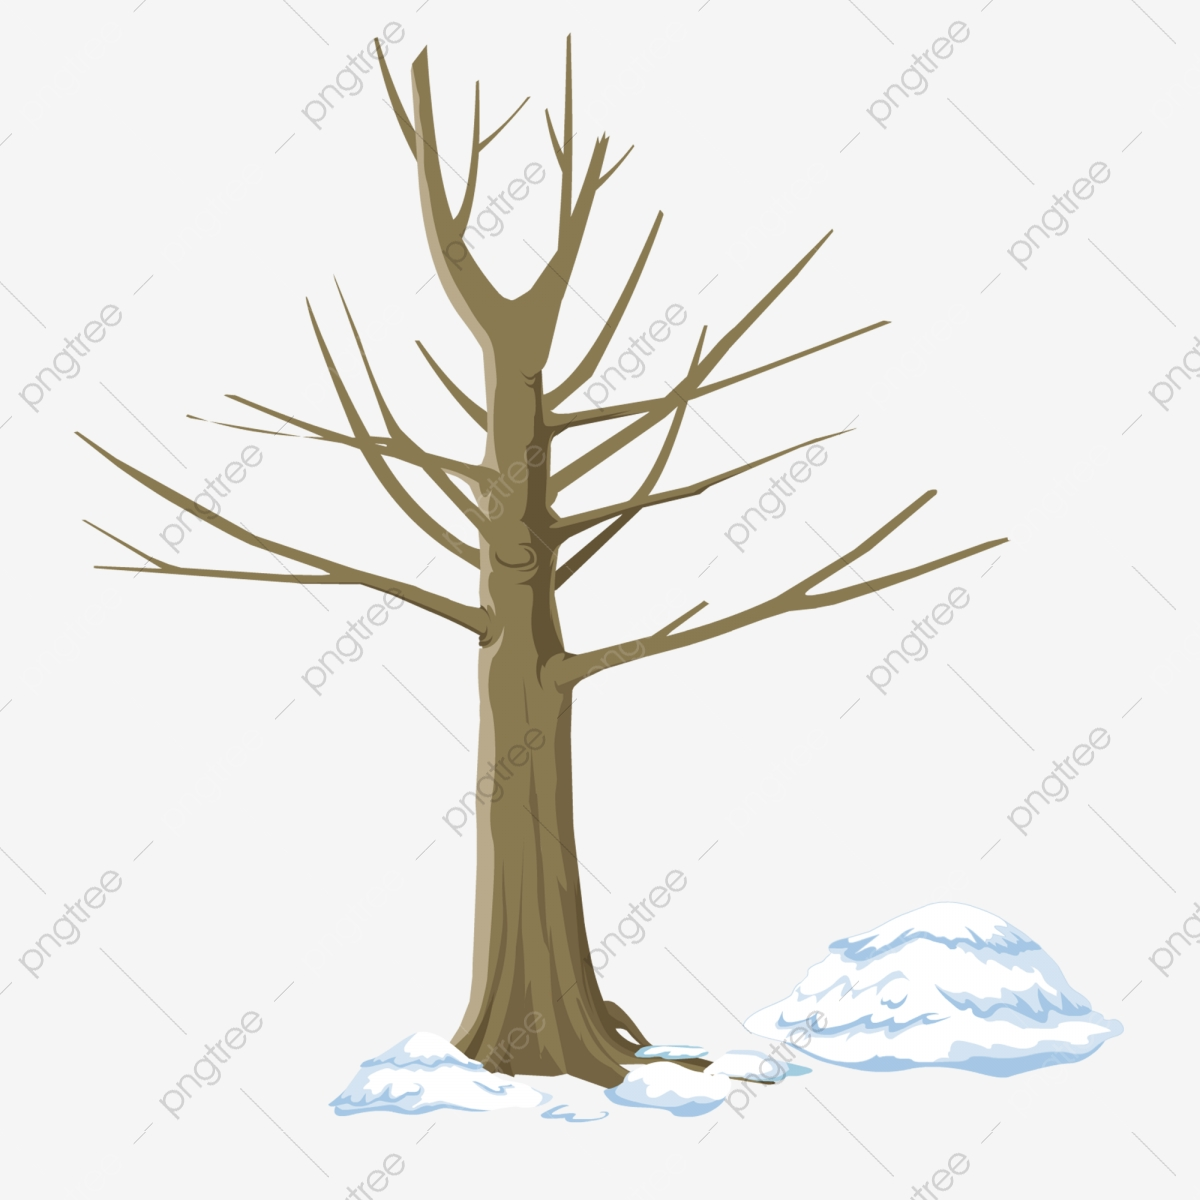 On The Snow Hand Painted Trees Cartoon Tree Autumn Leaves Trees Autumn Trees Hand Painted Leaves Png And Vector With Transparent Background For Free Download ✓ free for commercial use ✓ high quality images. https pngtree com freepng on the snow hand painted trees cartoon tree autumn leaves 3807339 html